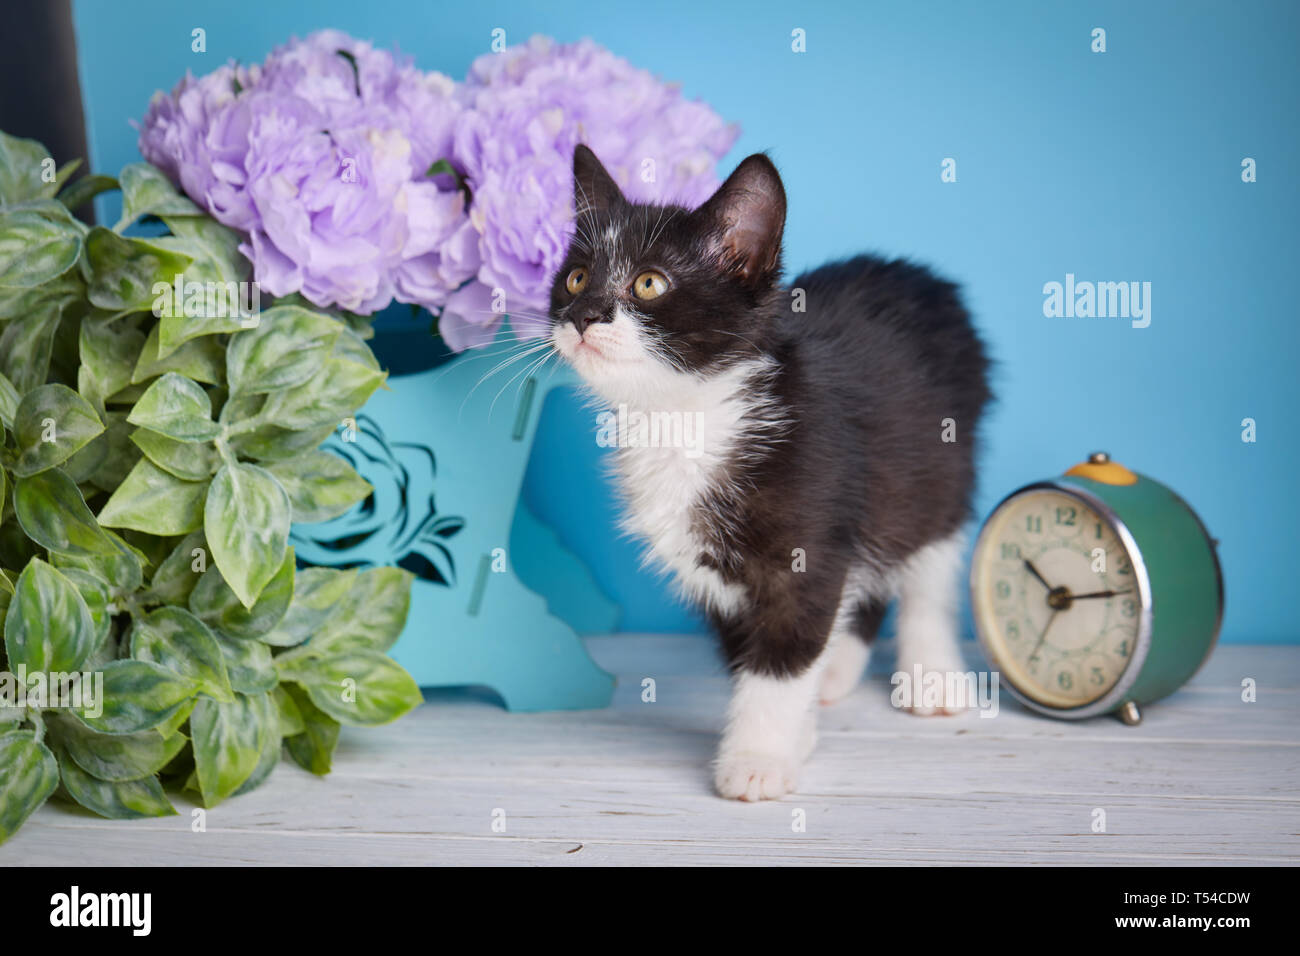 Tabby Black White Kitten Flowers Stockfotos & Tabby Black